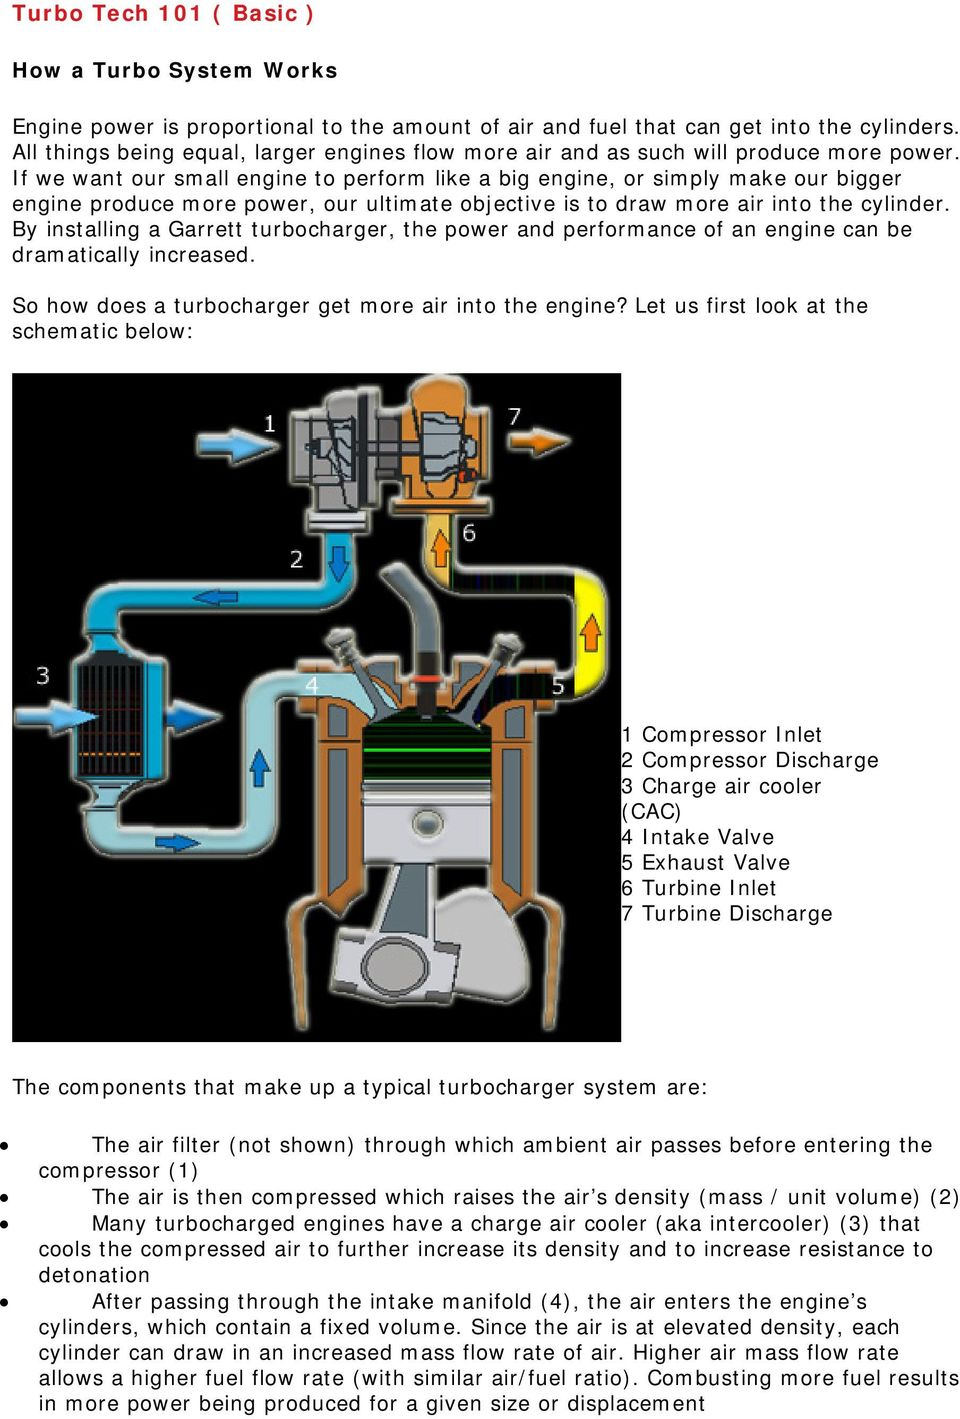 Turbo Tech 101 Basic Pdf Cat Turbocharger Diagram Of Engine If We Want Our Small To Perform Like A Big Or Simply Make